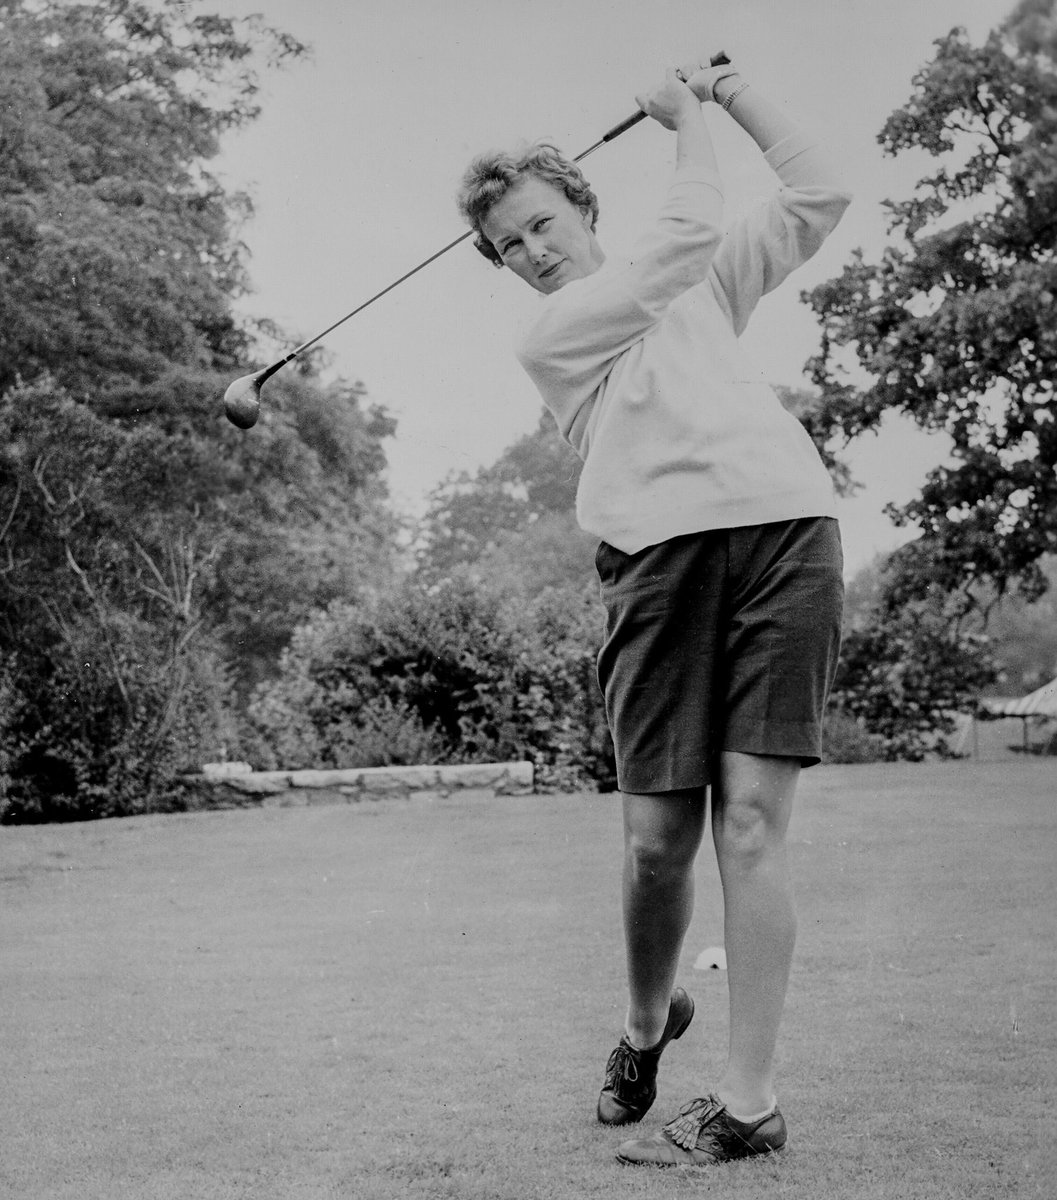 True pioneer for not just the women's game, but the entire Game of Golf. RIP to the great Mickey Wright